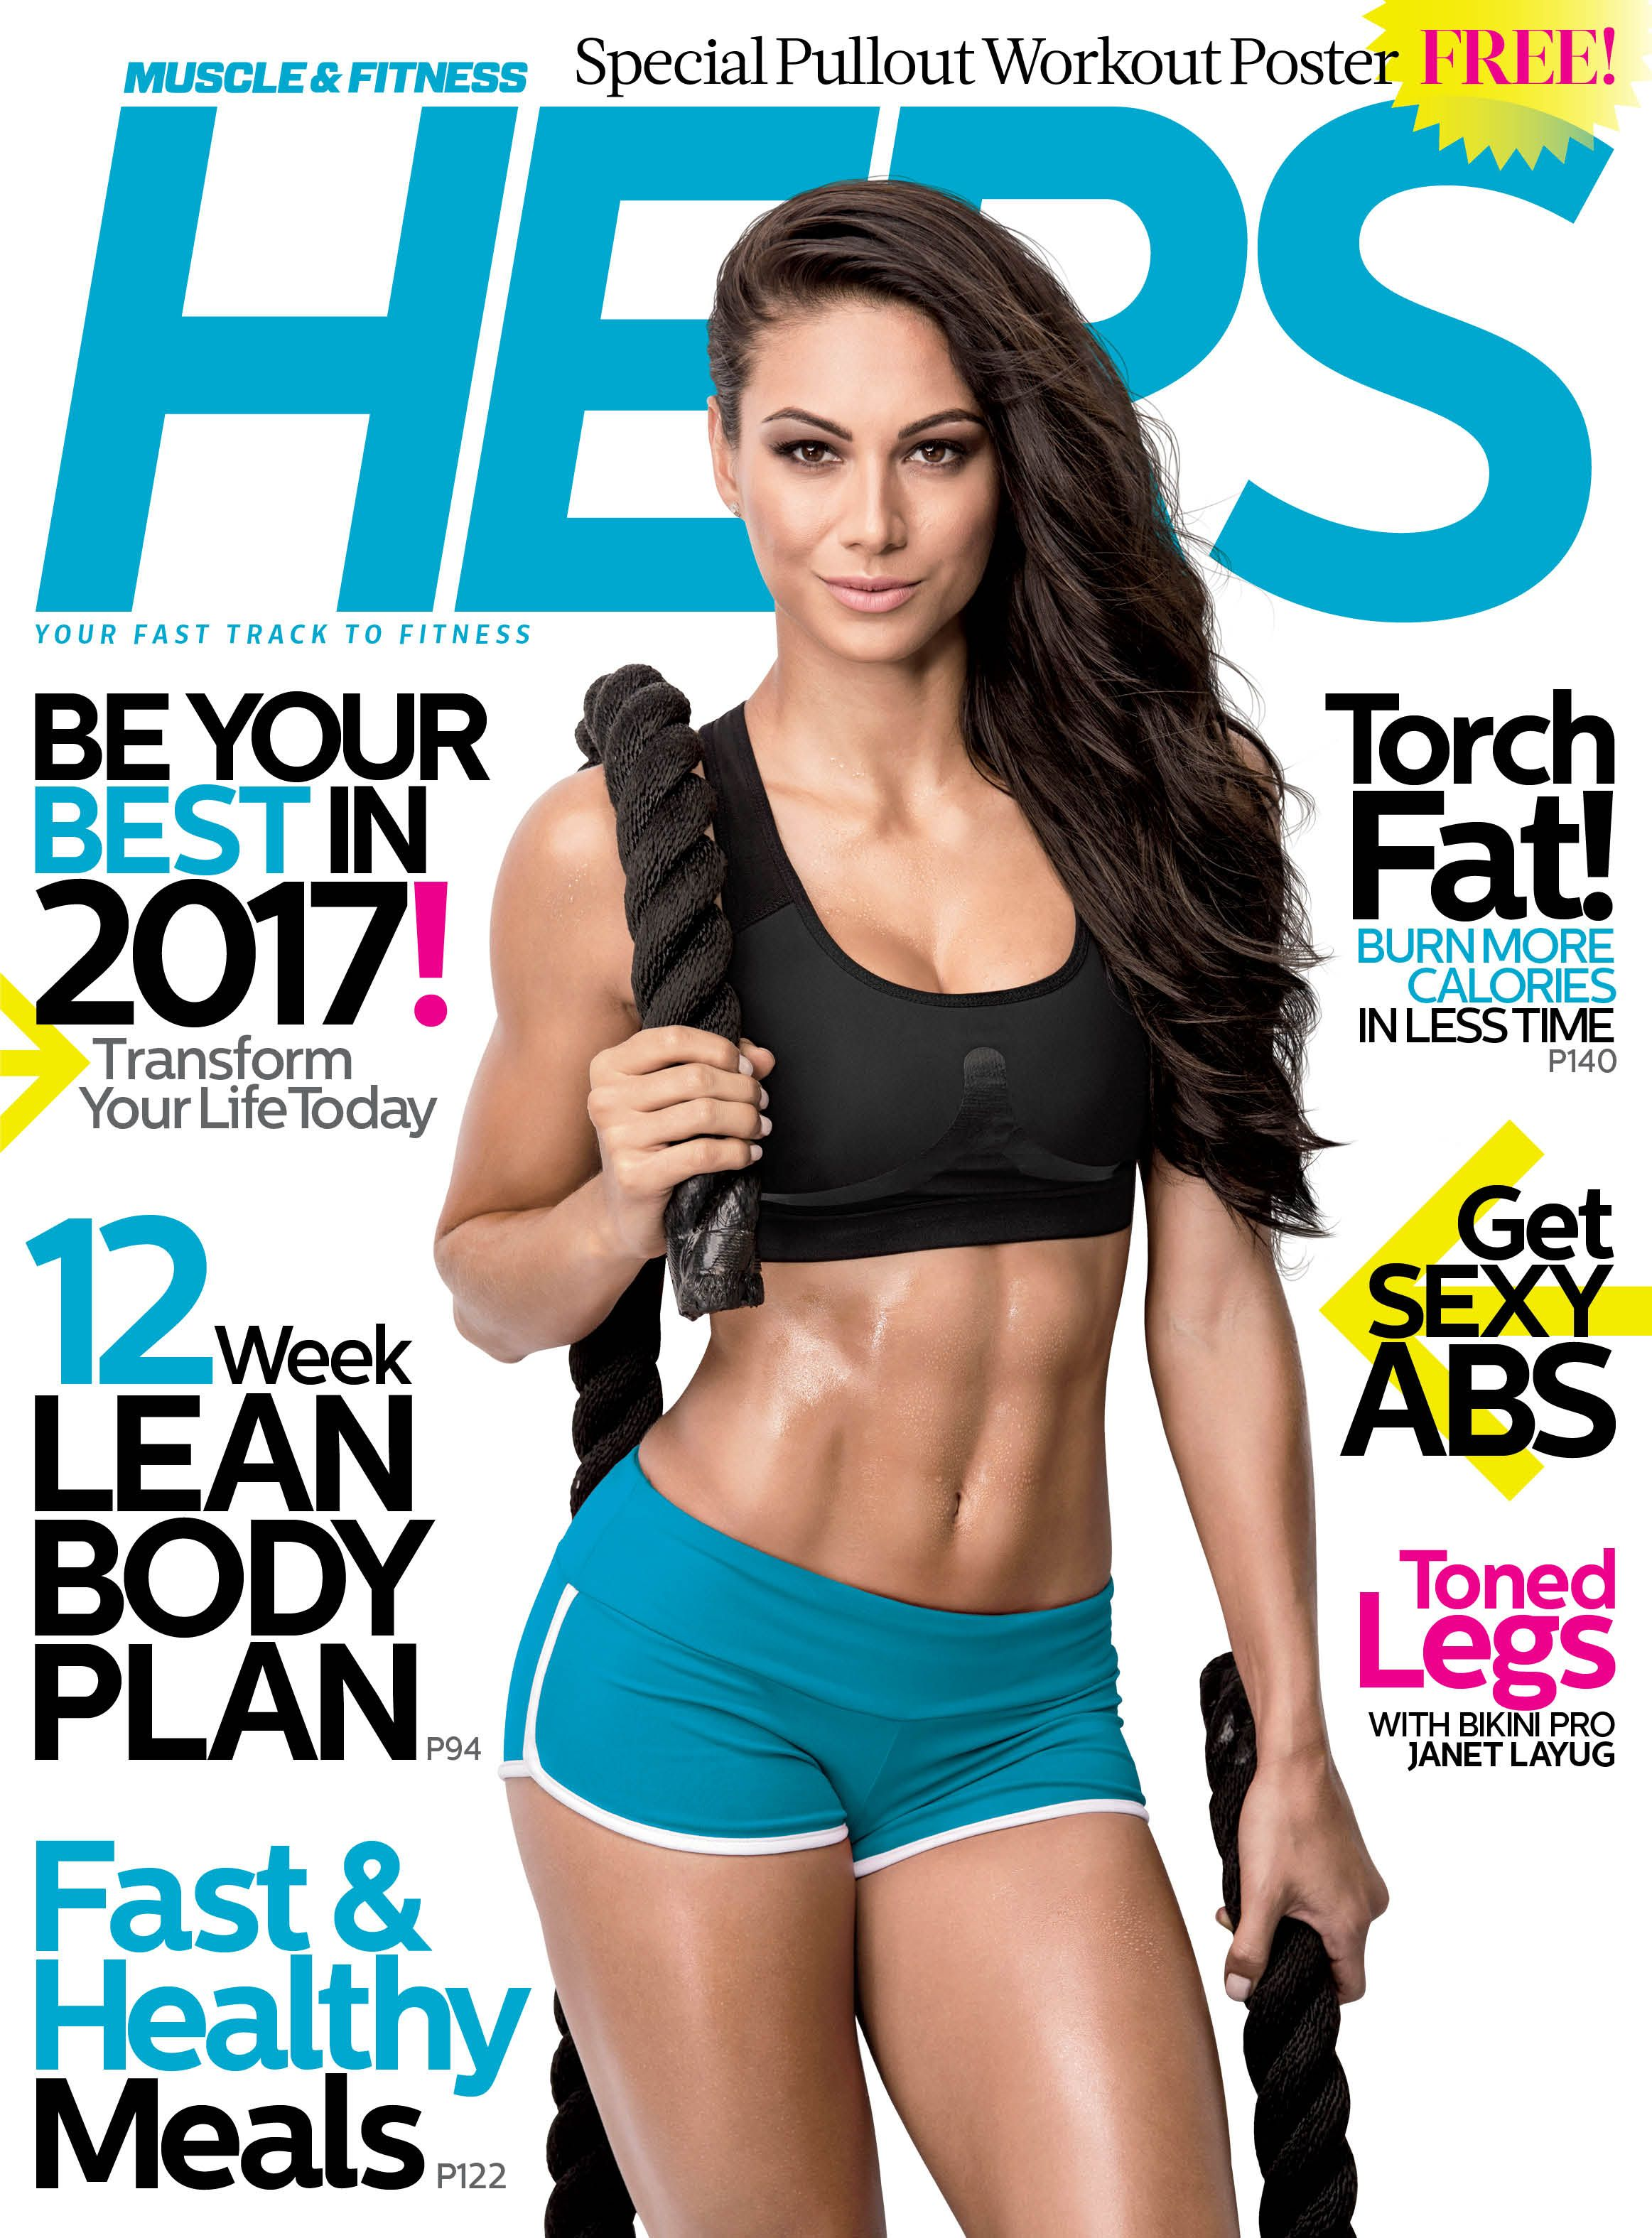 cb68bdd0bf8 Pick up our January 2017 Issue of Muscle   Fitness Hers magazine with IFBB  Bikini Pro Janet Layug